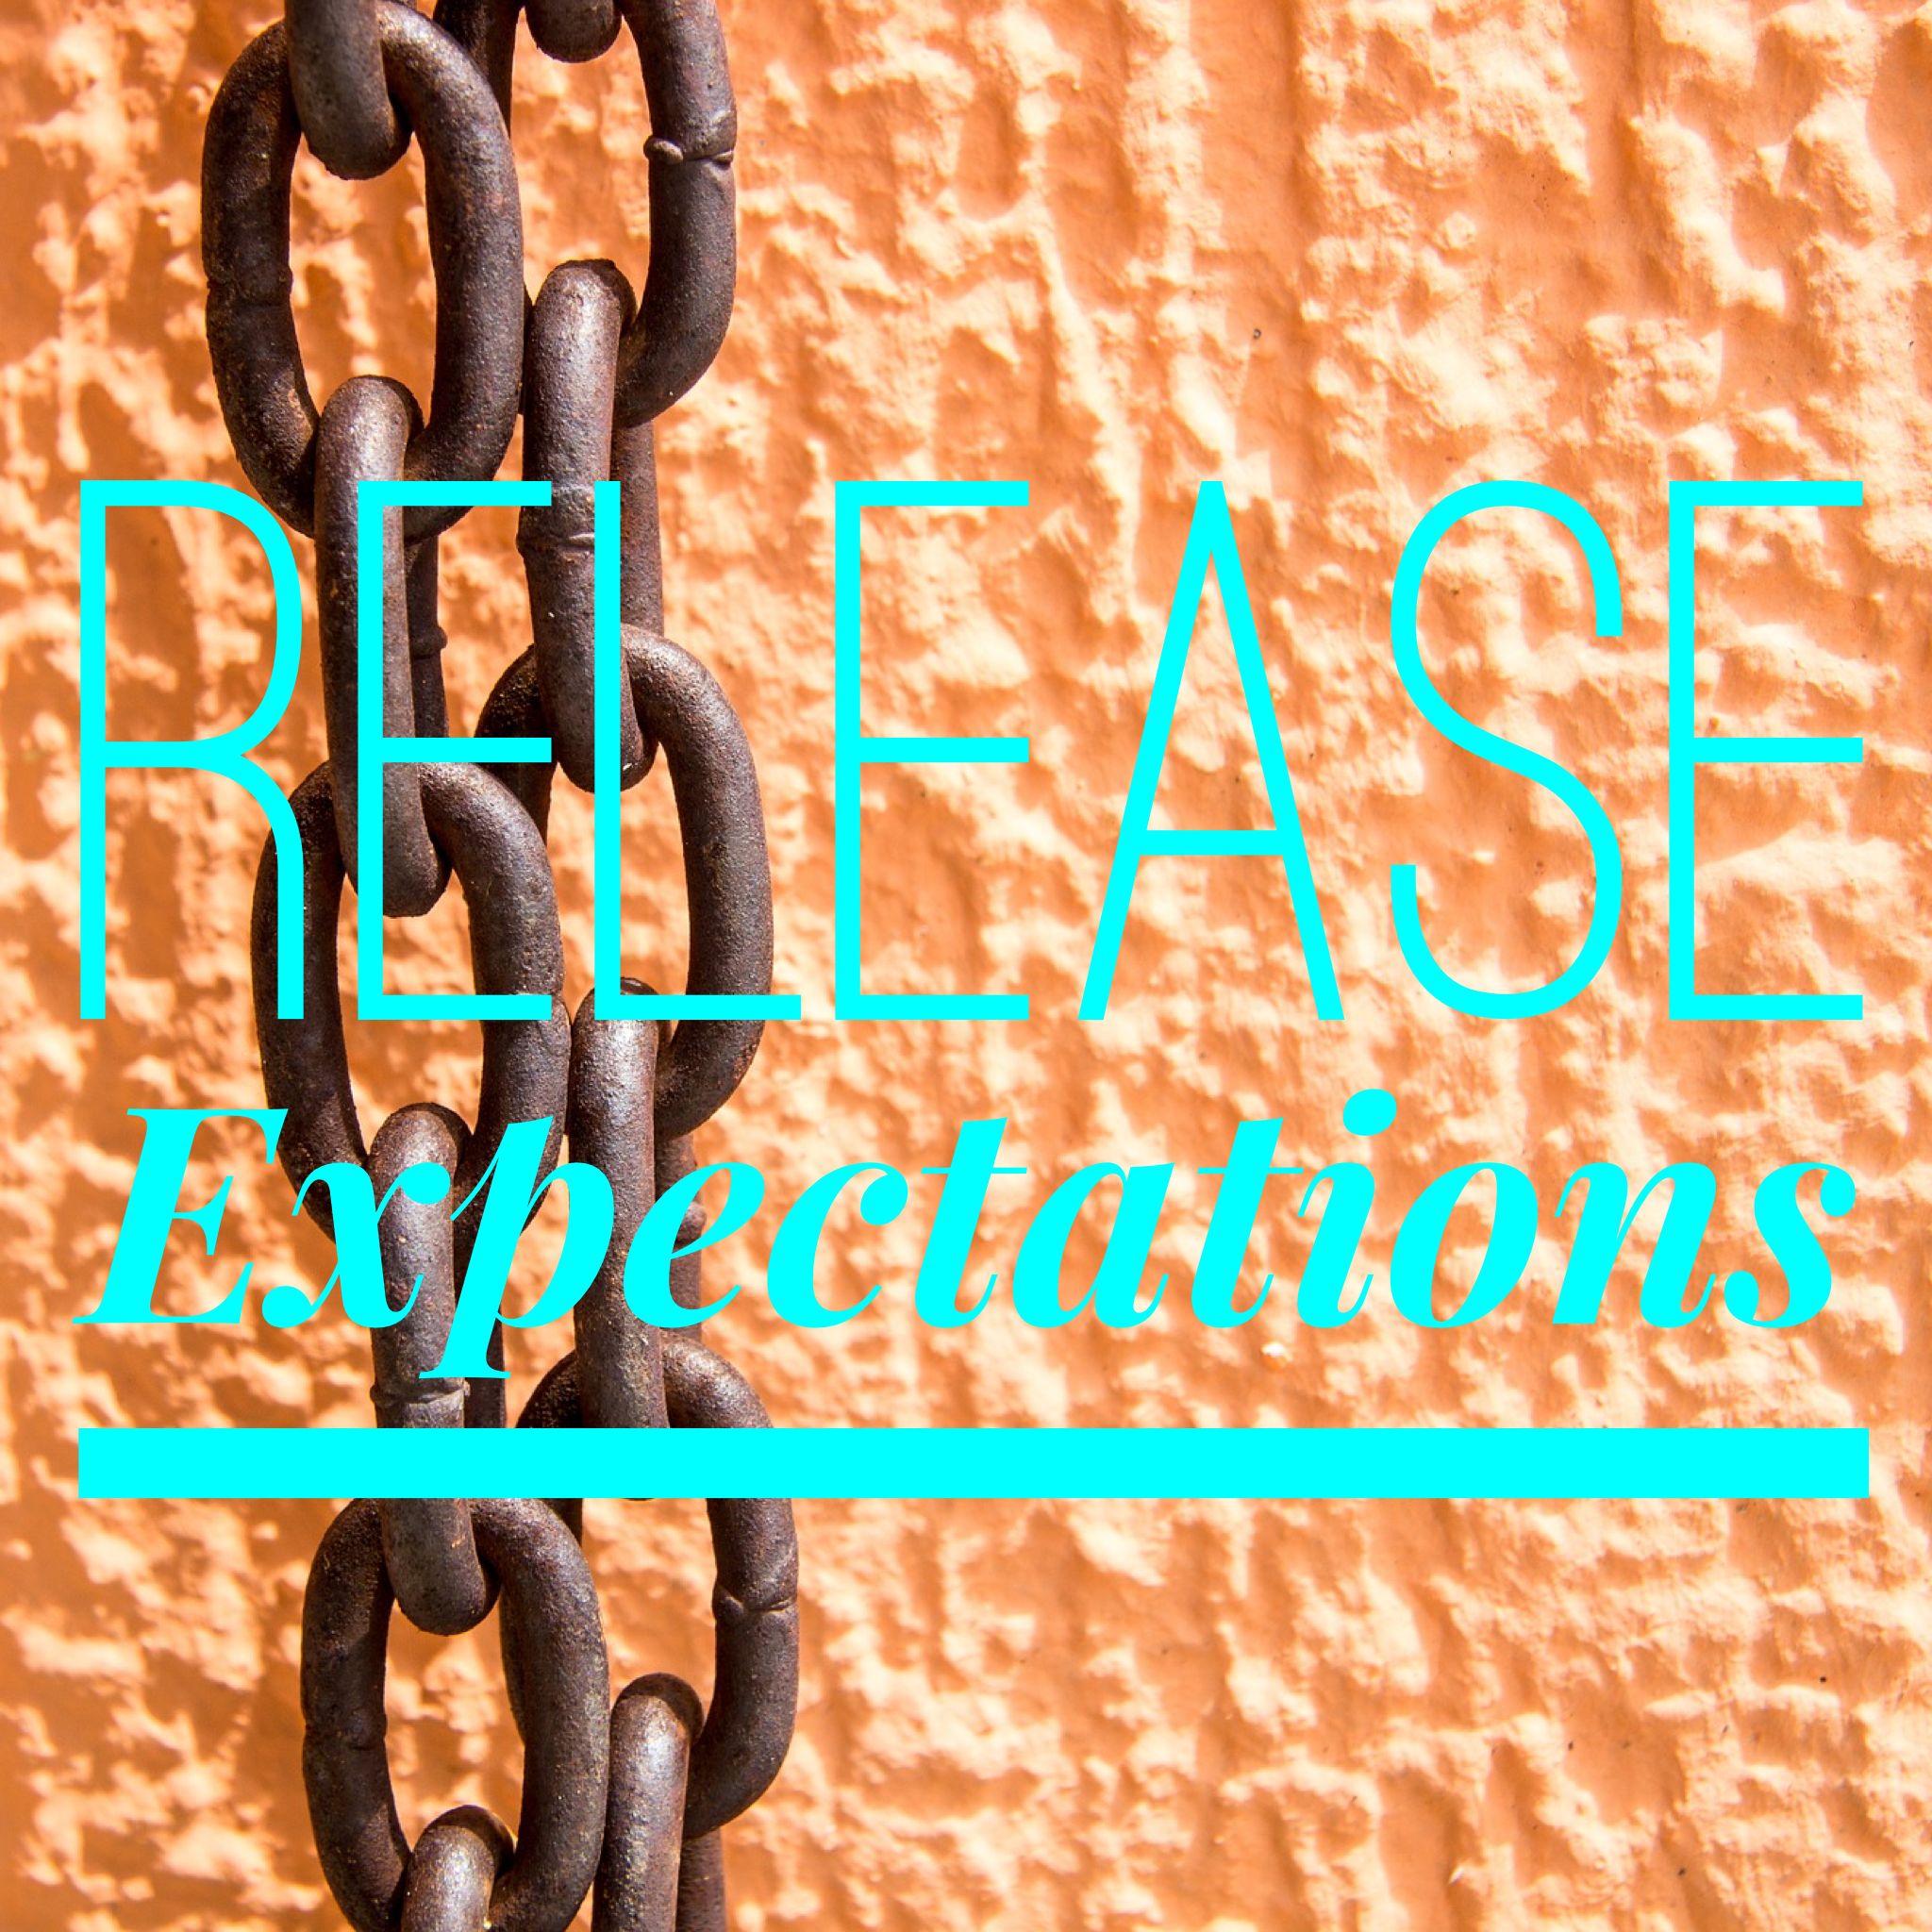 detachment and release expectations